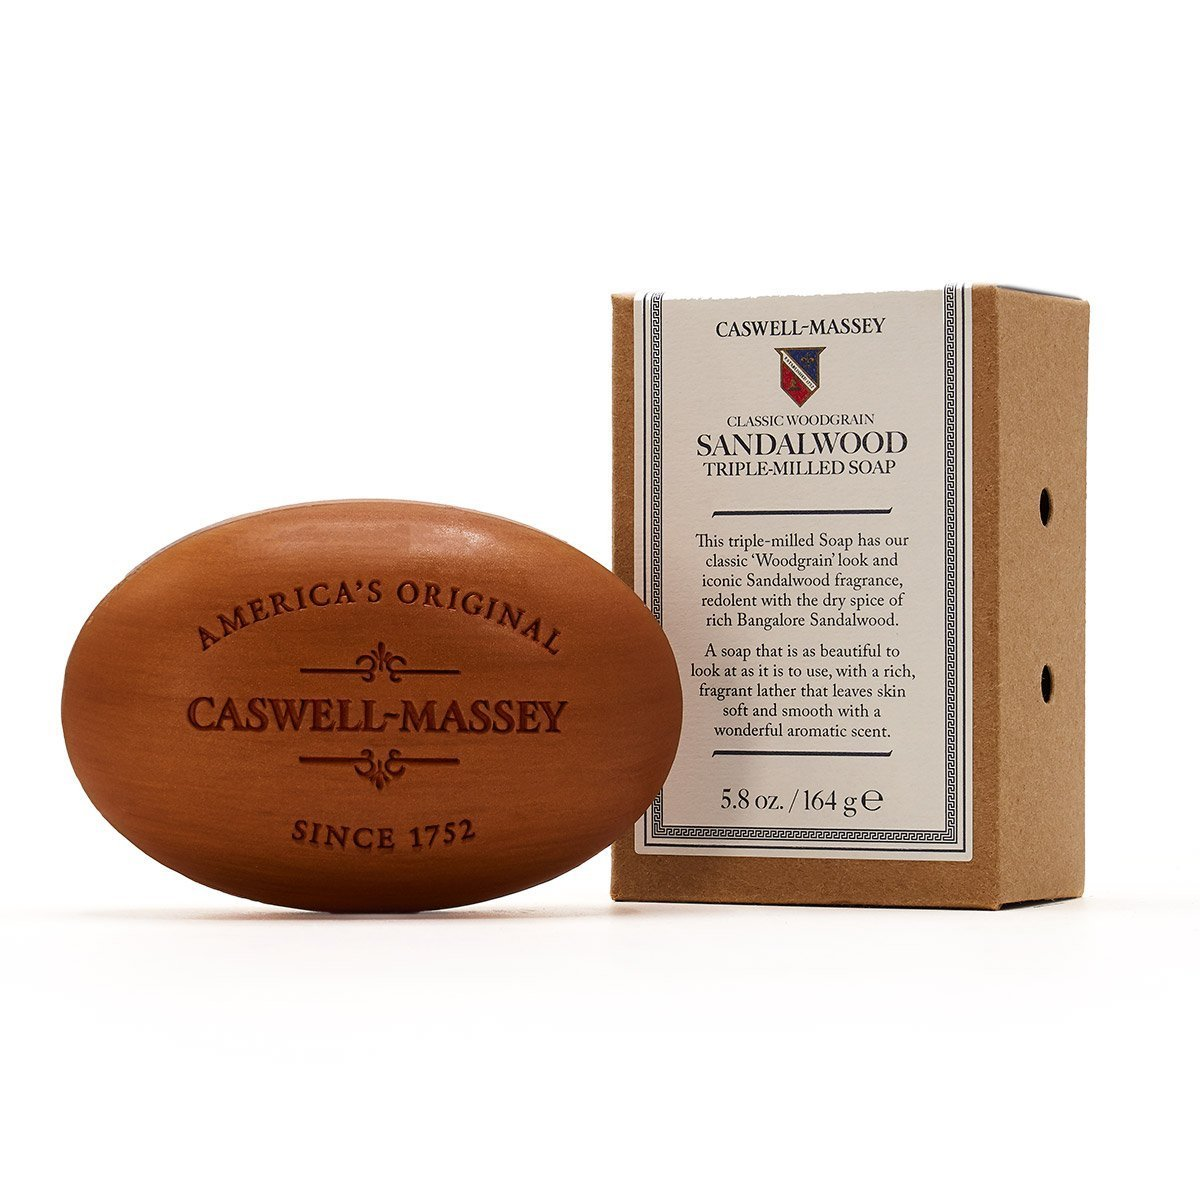 Caswell-Massey Sandalwood Bath Soap (5.8 oz. bar)